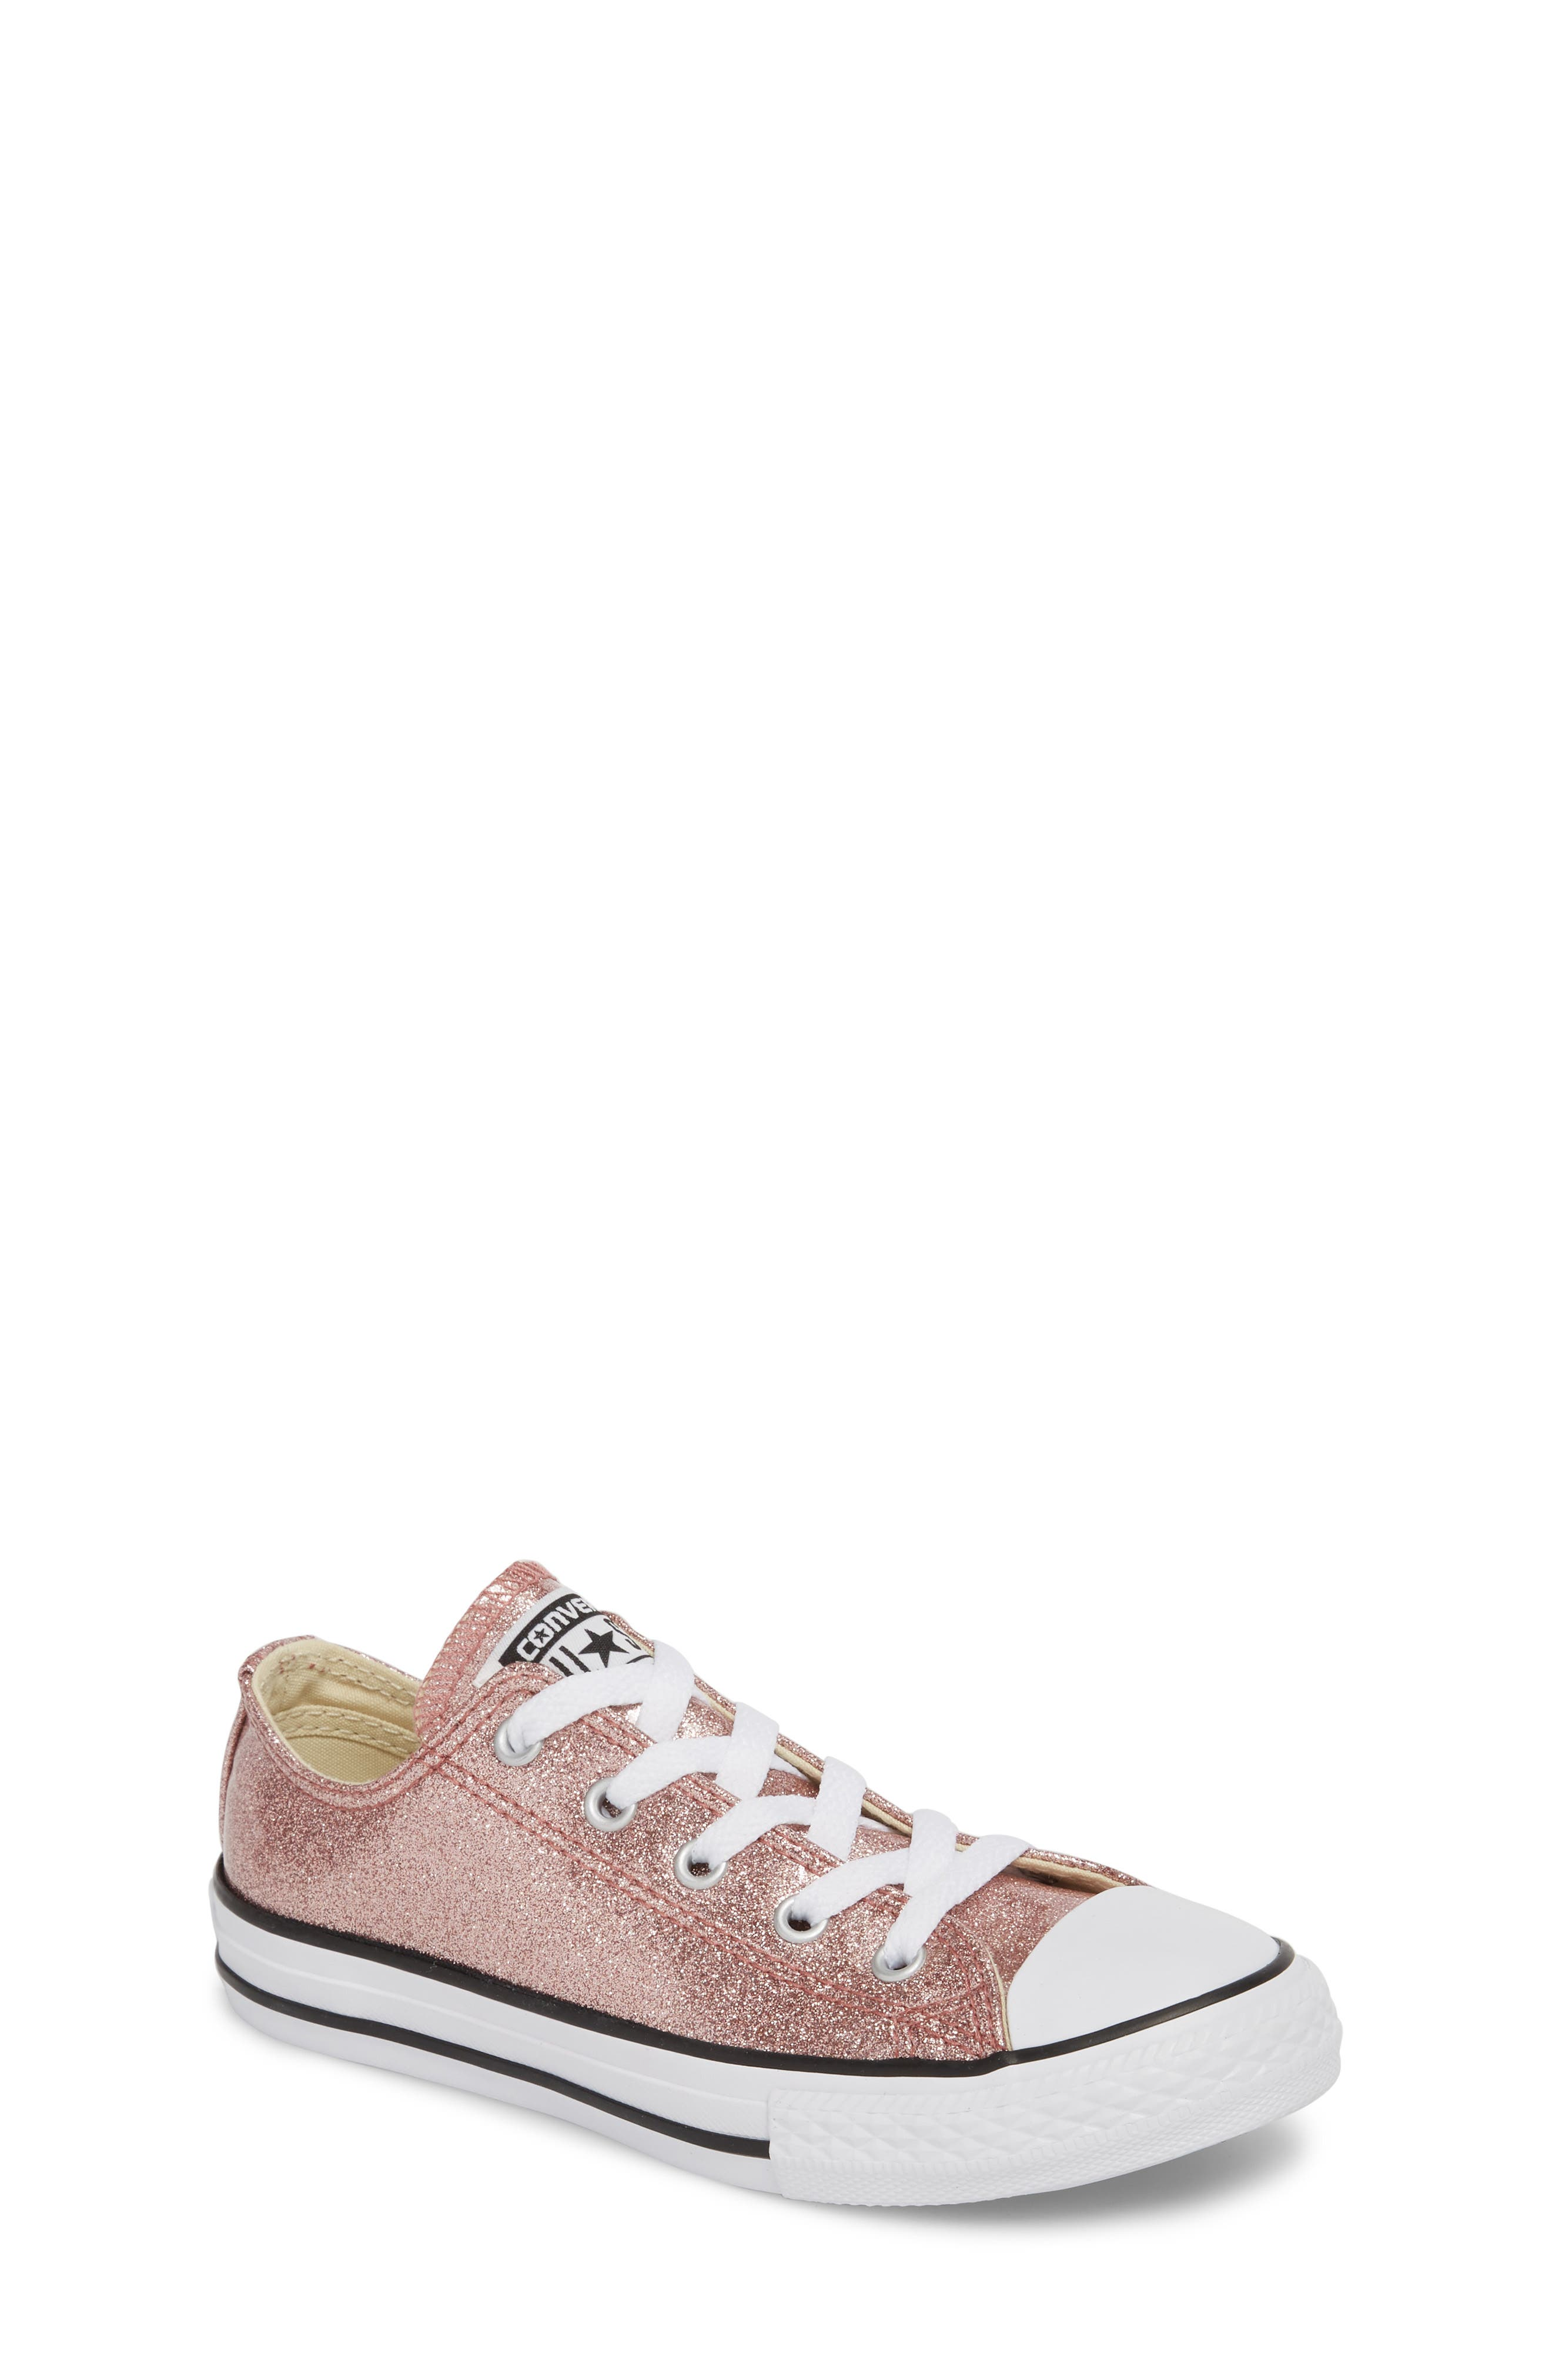 Chuck Taylor<sup>®</sup> All Star<sup>®</sup> Glitter Slip-On,                             Main thumbnail 1, color,                             Rose Gold